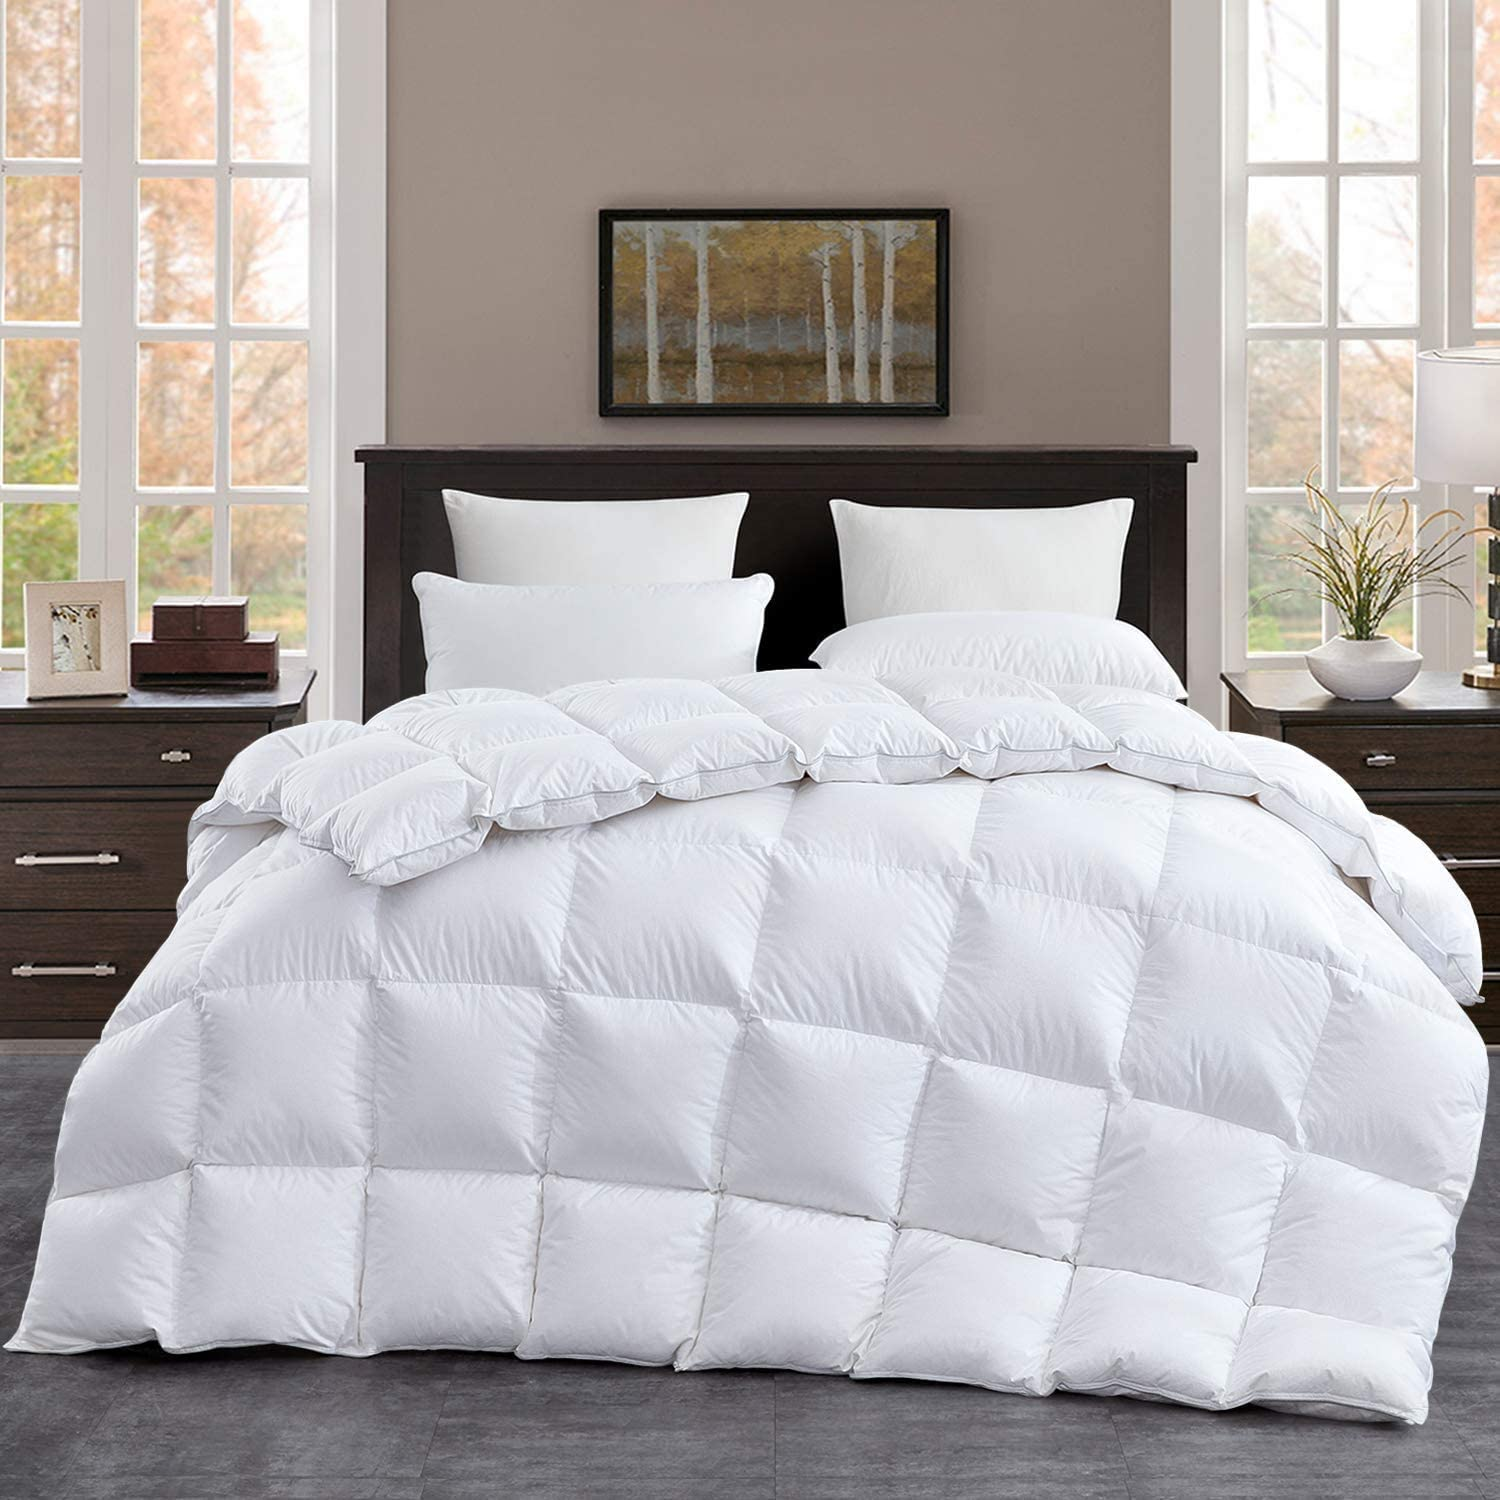 Luxurious 120 X120 Oversized King Size Goose Down Comforter 85 Oz Fluffy Down Duvet Insert Goose Down Feather 100 Cotton Shell Down Proof With 8 Corner Tabs Kitchen Dining Amazon Com